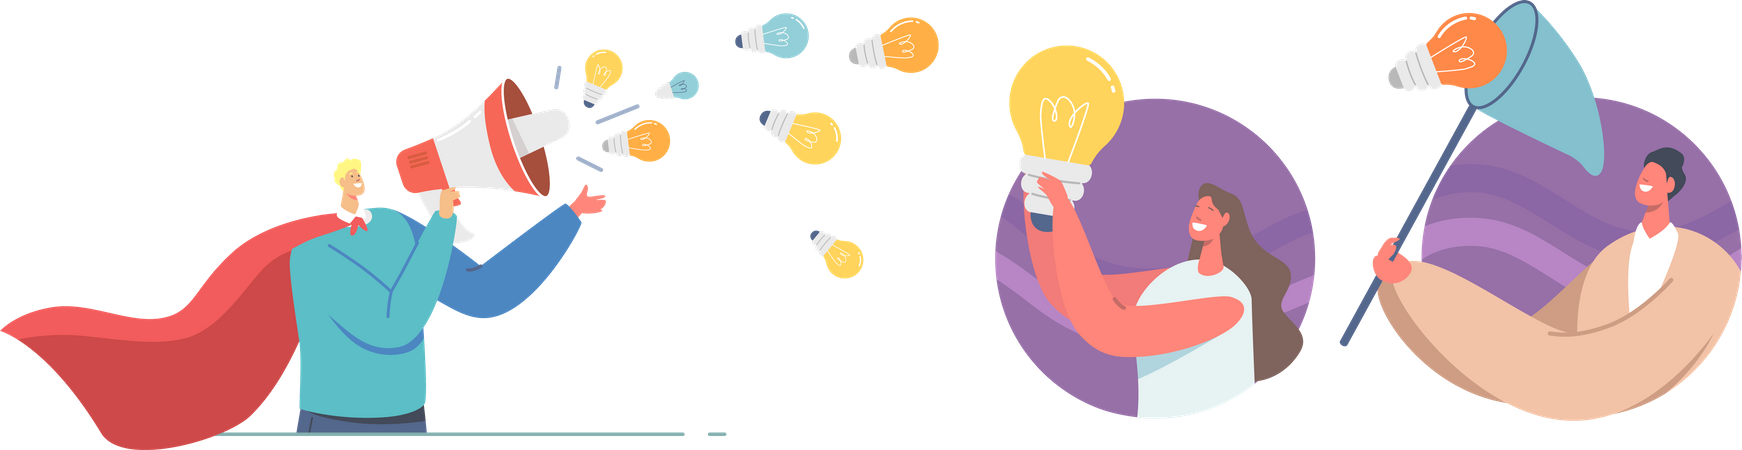 Marketer Spread Knowledge and Ideas Illustration